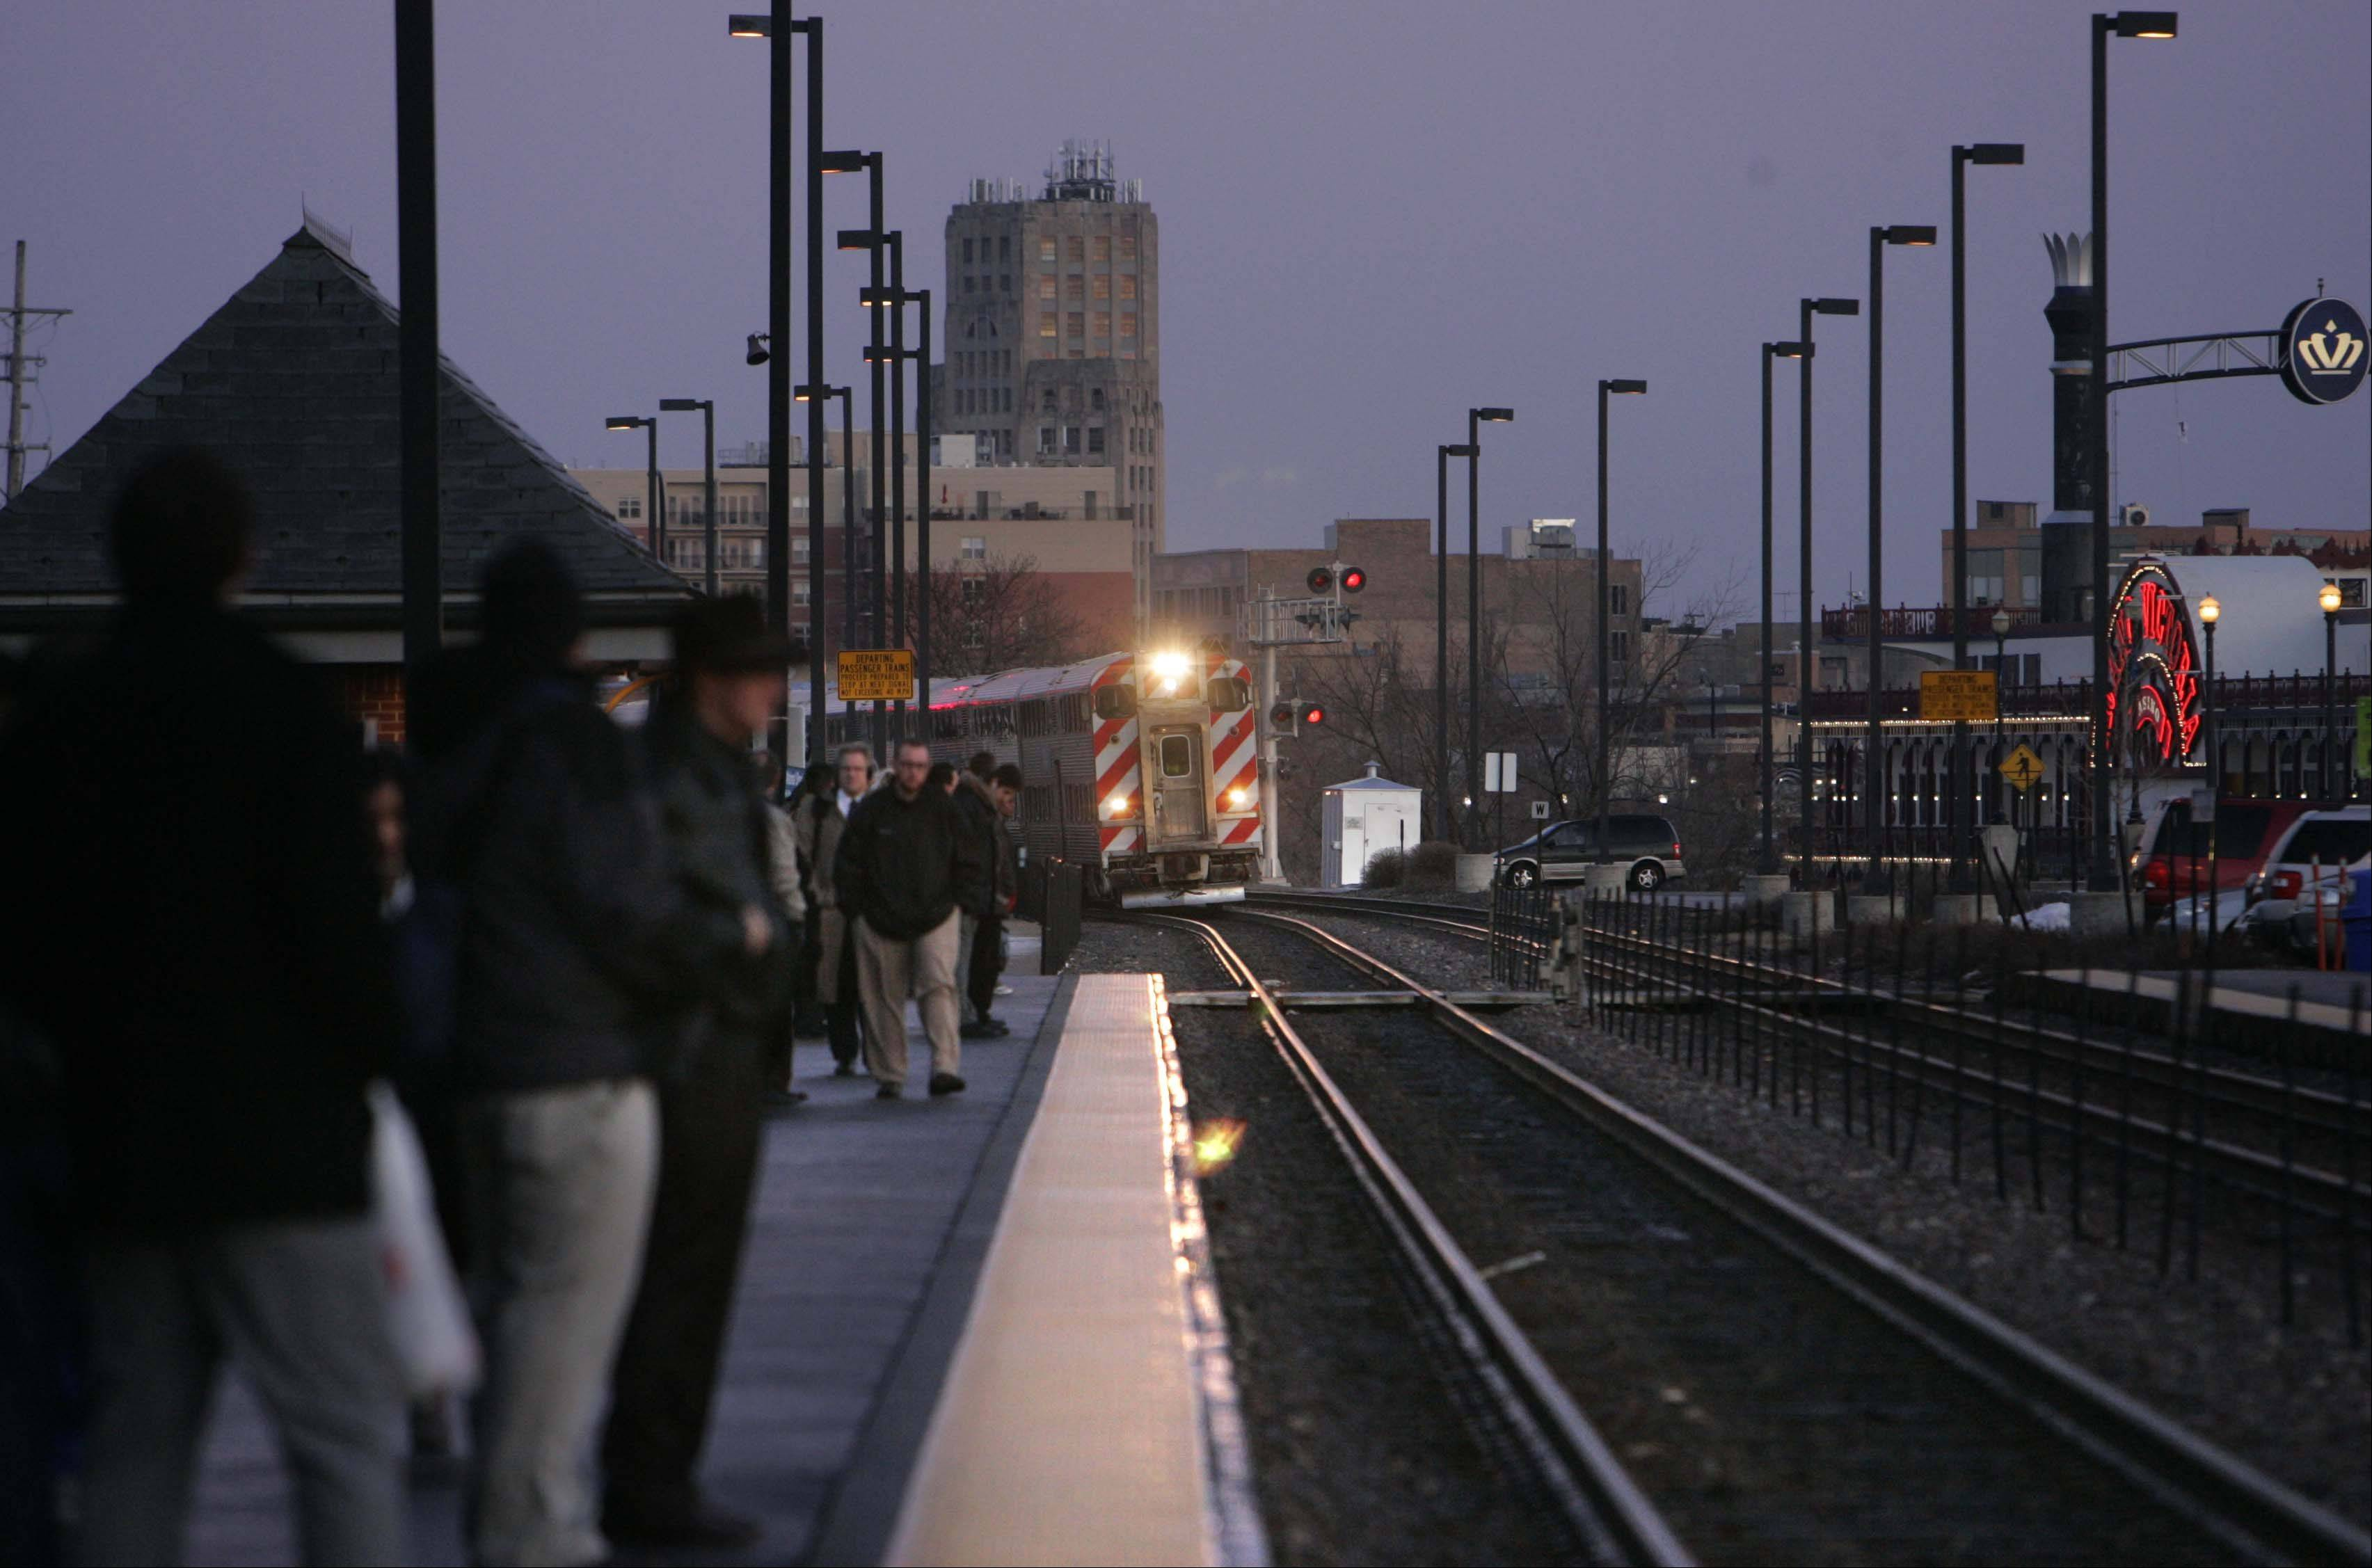 A Metra train rolls into Elgin Tuesday, the day before fares spike by 30 percent for 10-ride tickets and 29 percent for monthly passes. Officials say rising costs and past financial mismanagement have made the hikes necessary.